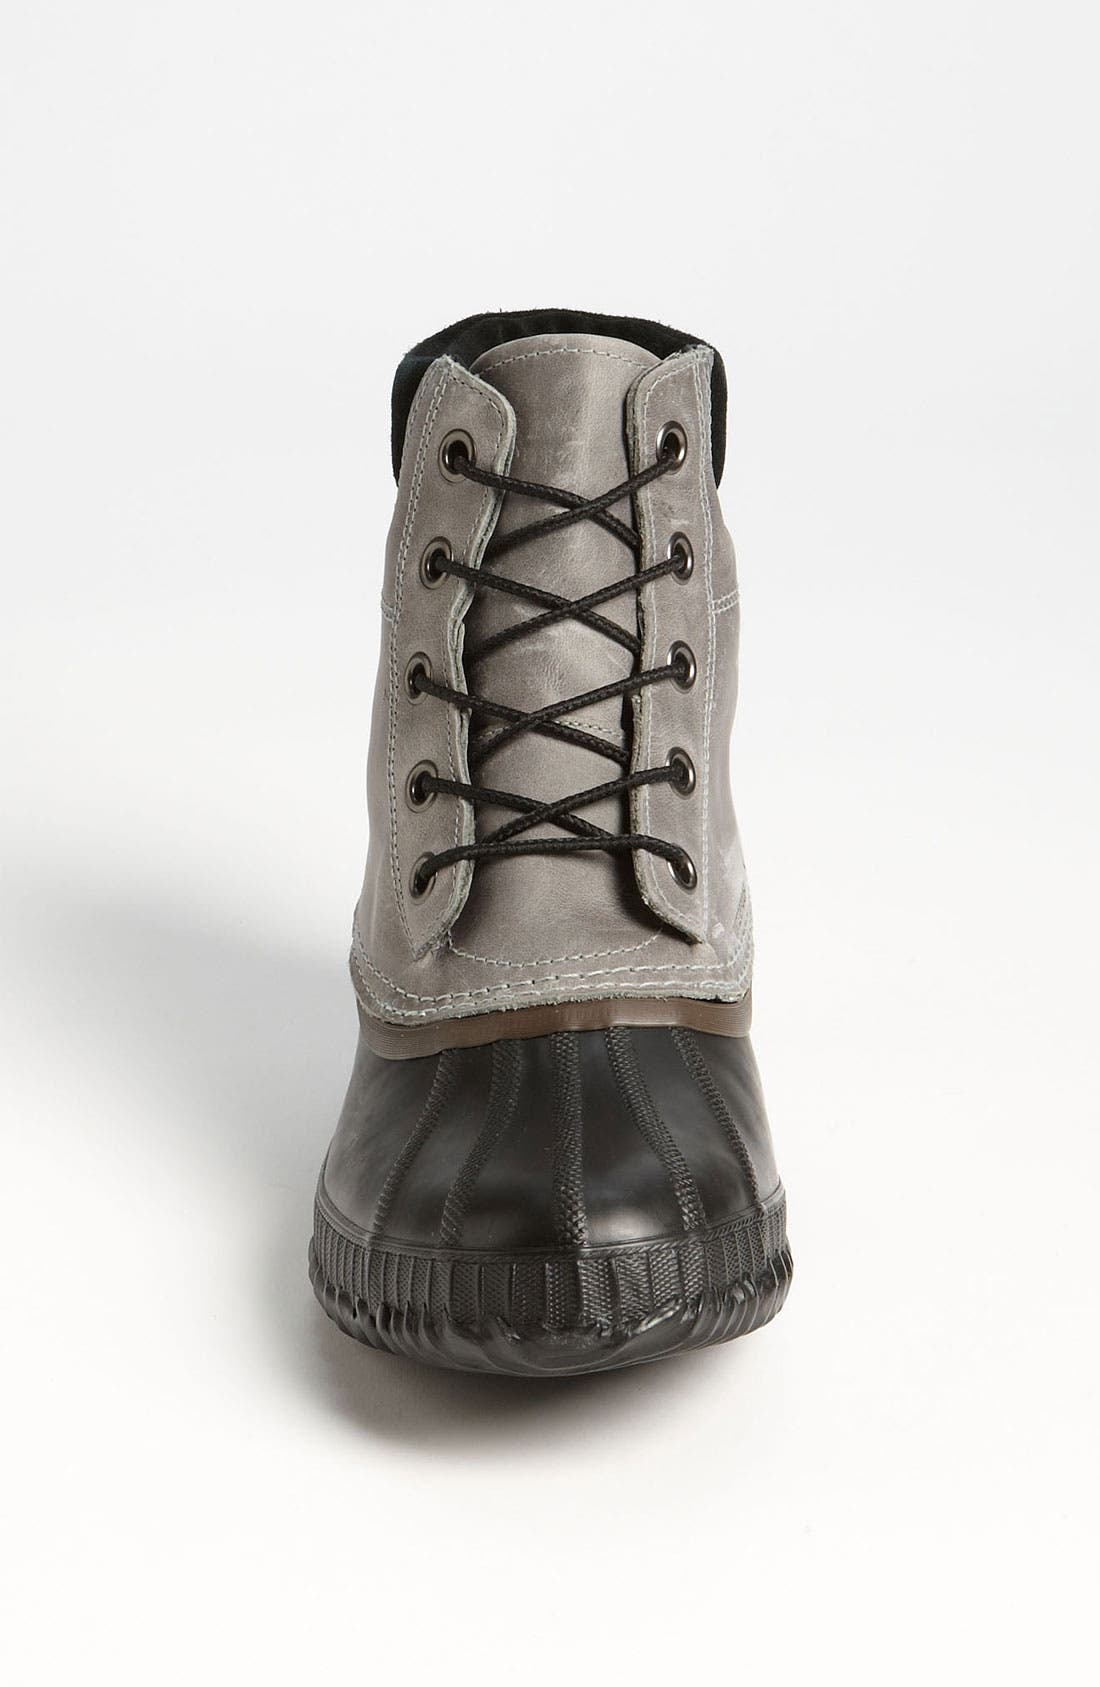 SOREL, Cheyanne' Snow Boot, Alternate thumbnail 2, color, 020